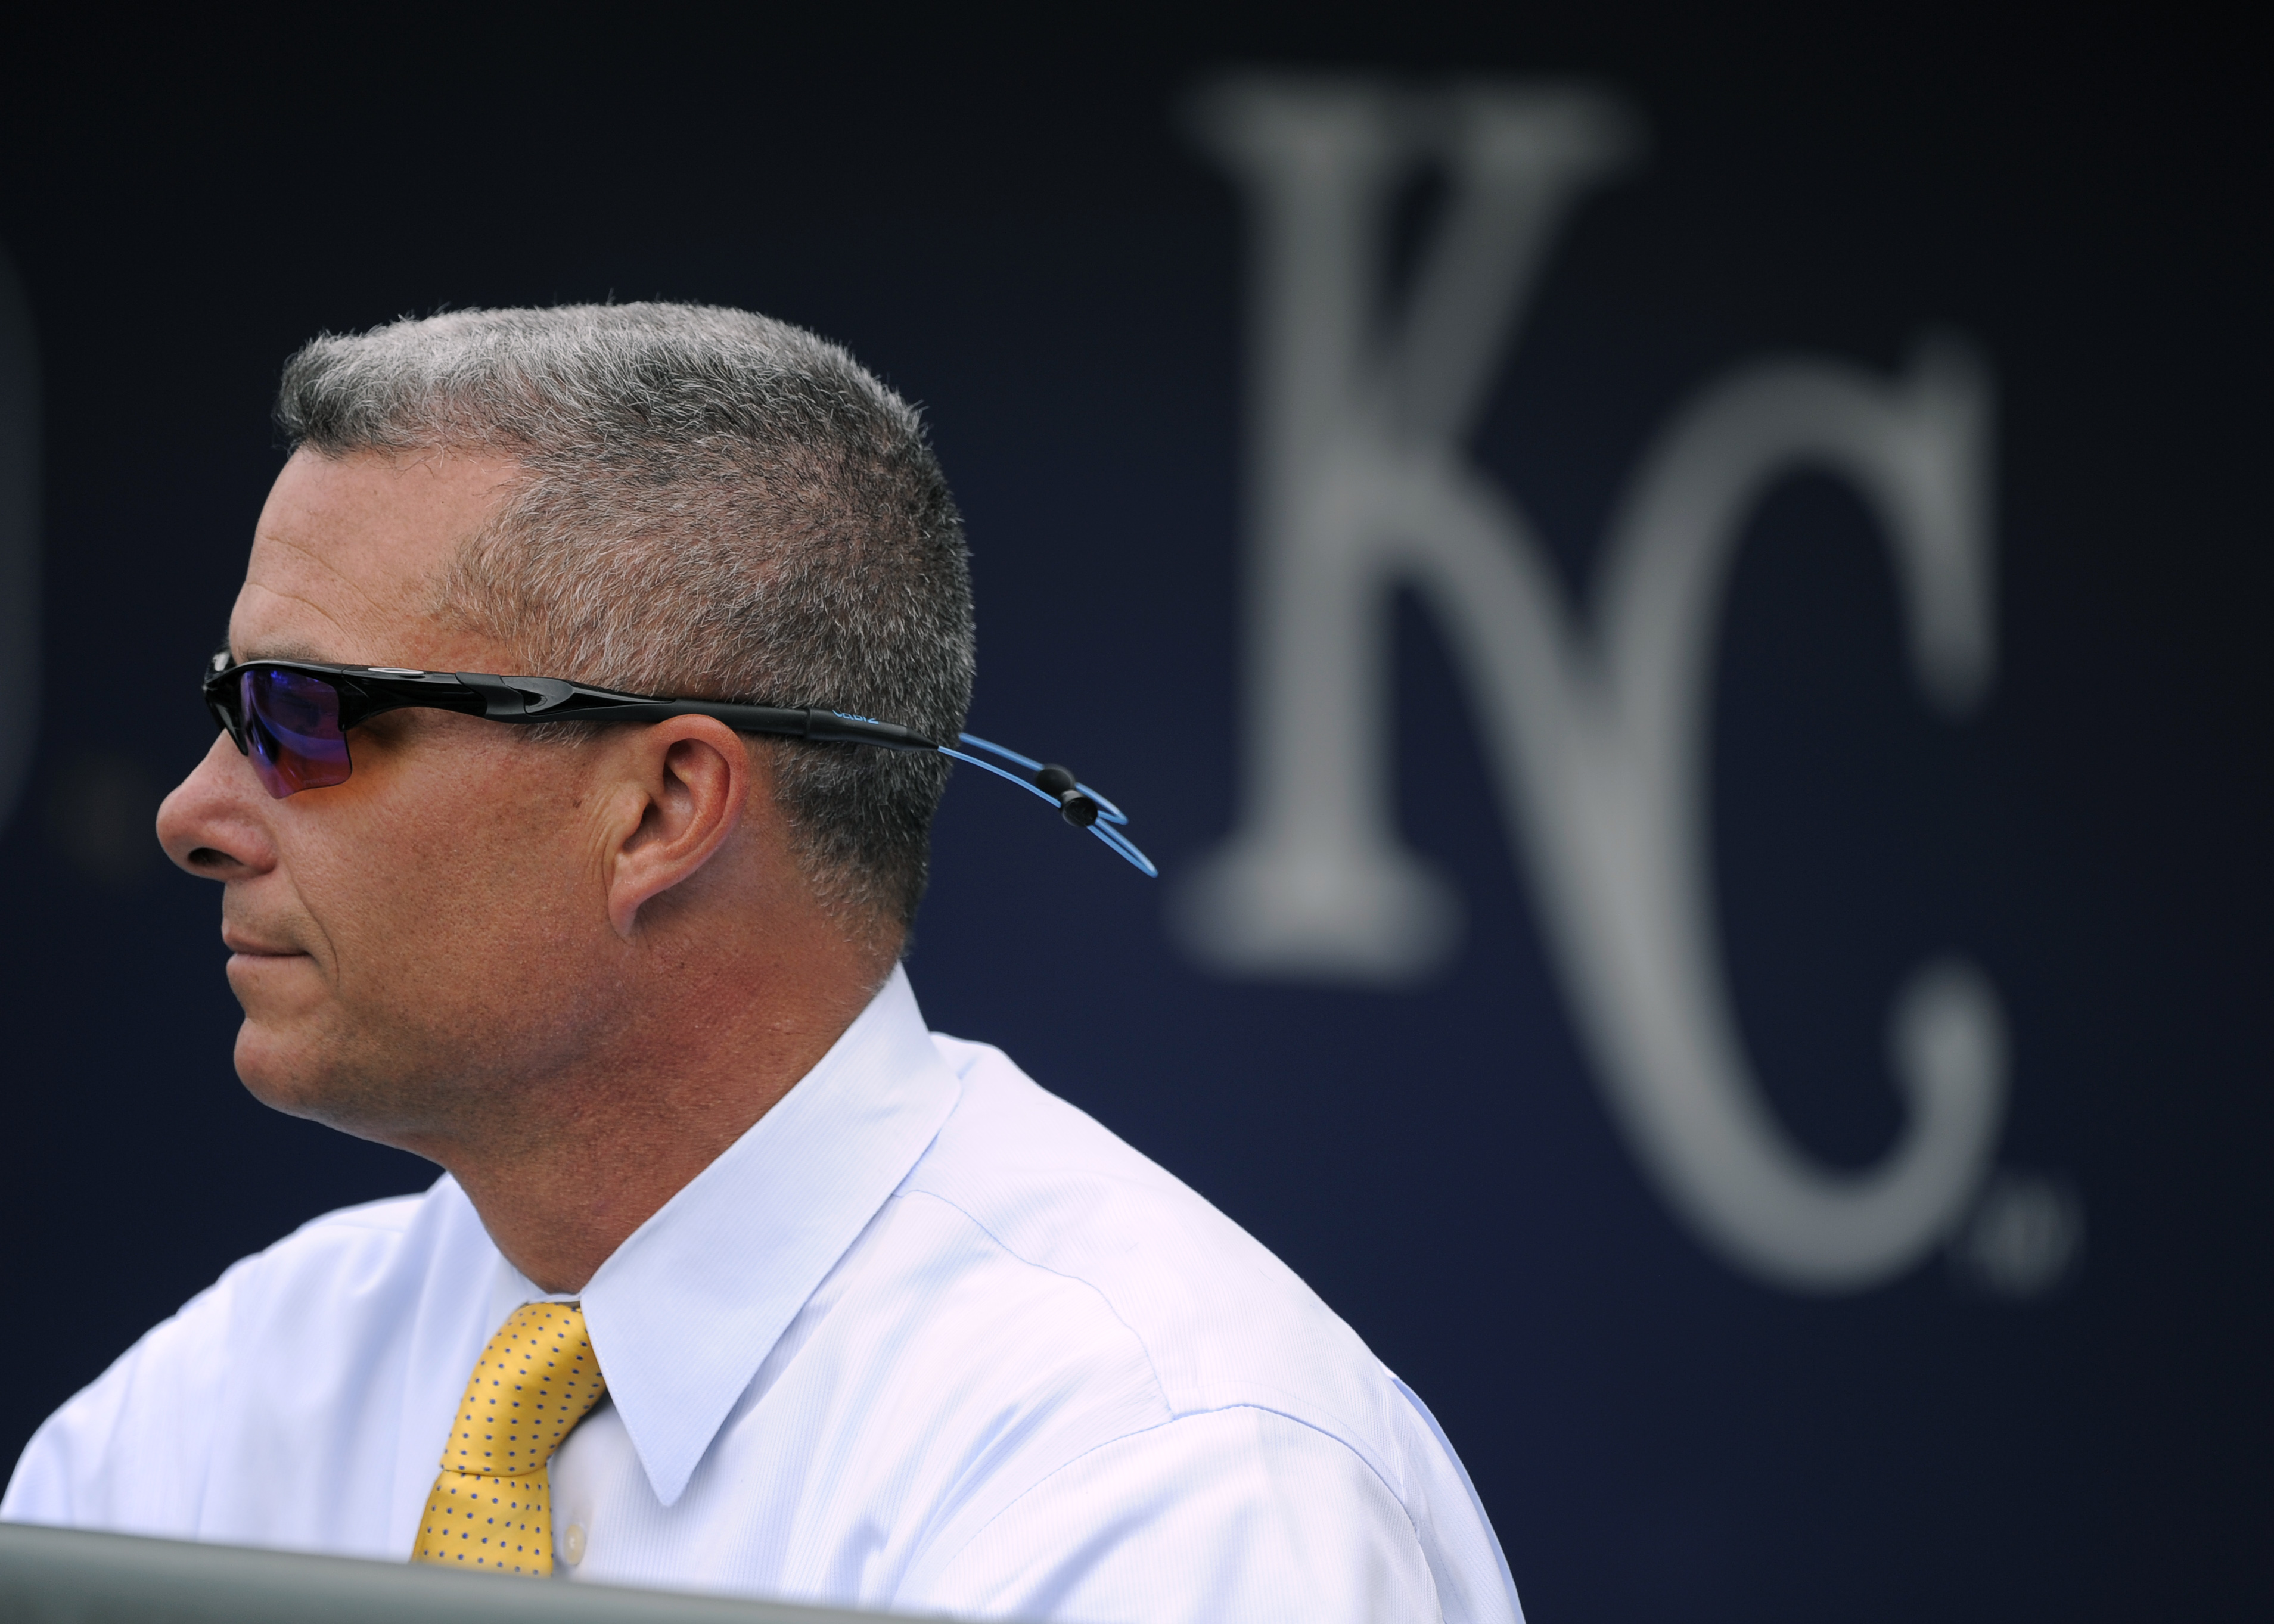 Dayton Moore, general manager of the Kansas City Royals, watches as the Royals take batting practice prior to a game against the Detroit Tigers on May 1, 2015 at Kauffman Stadium in Kansas City, Missouri.